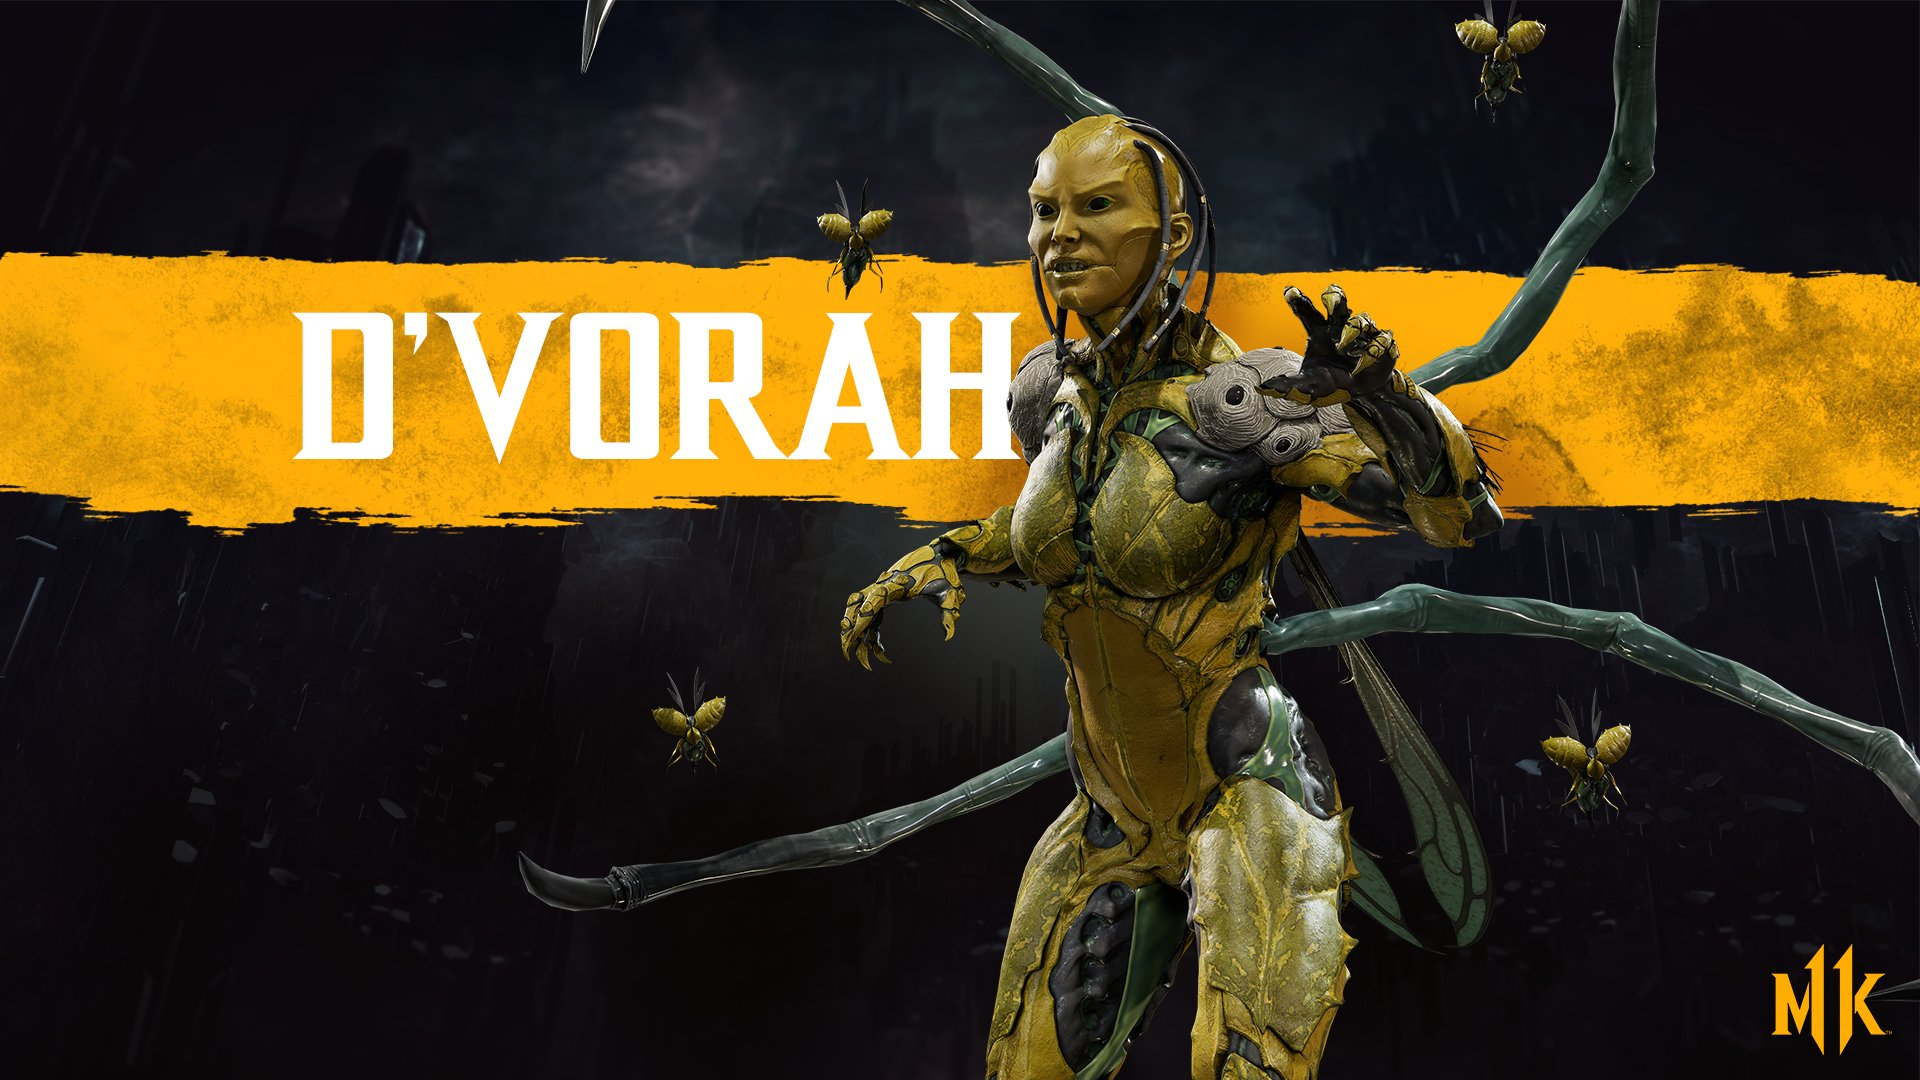 Mortal Kombat 11 wallpaper - D'Vorah